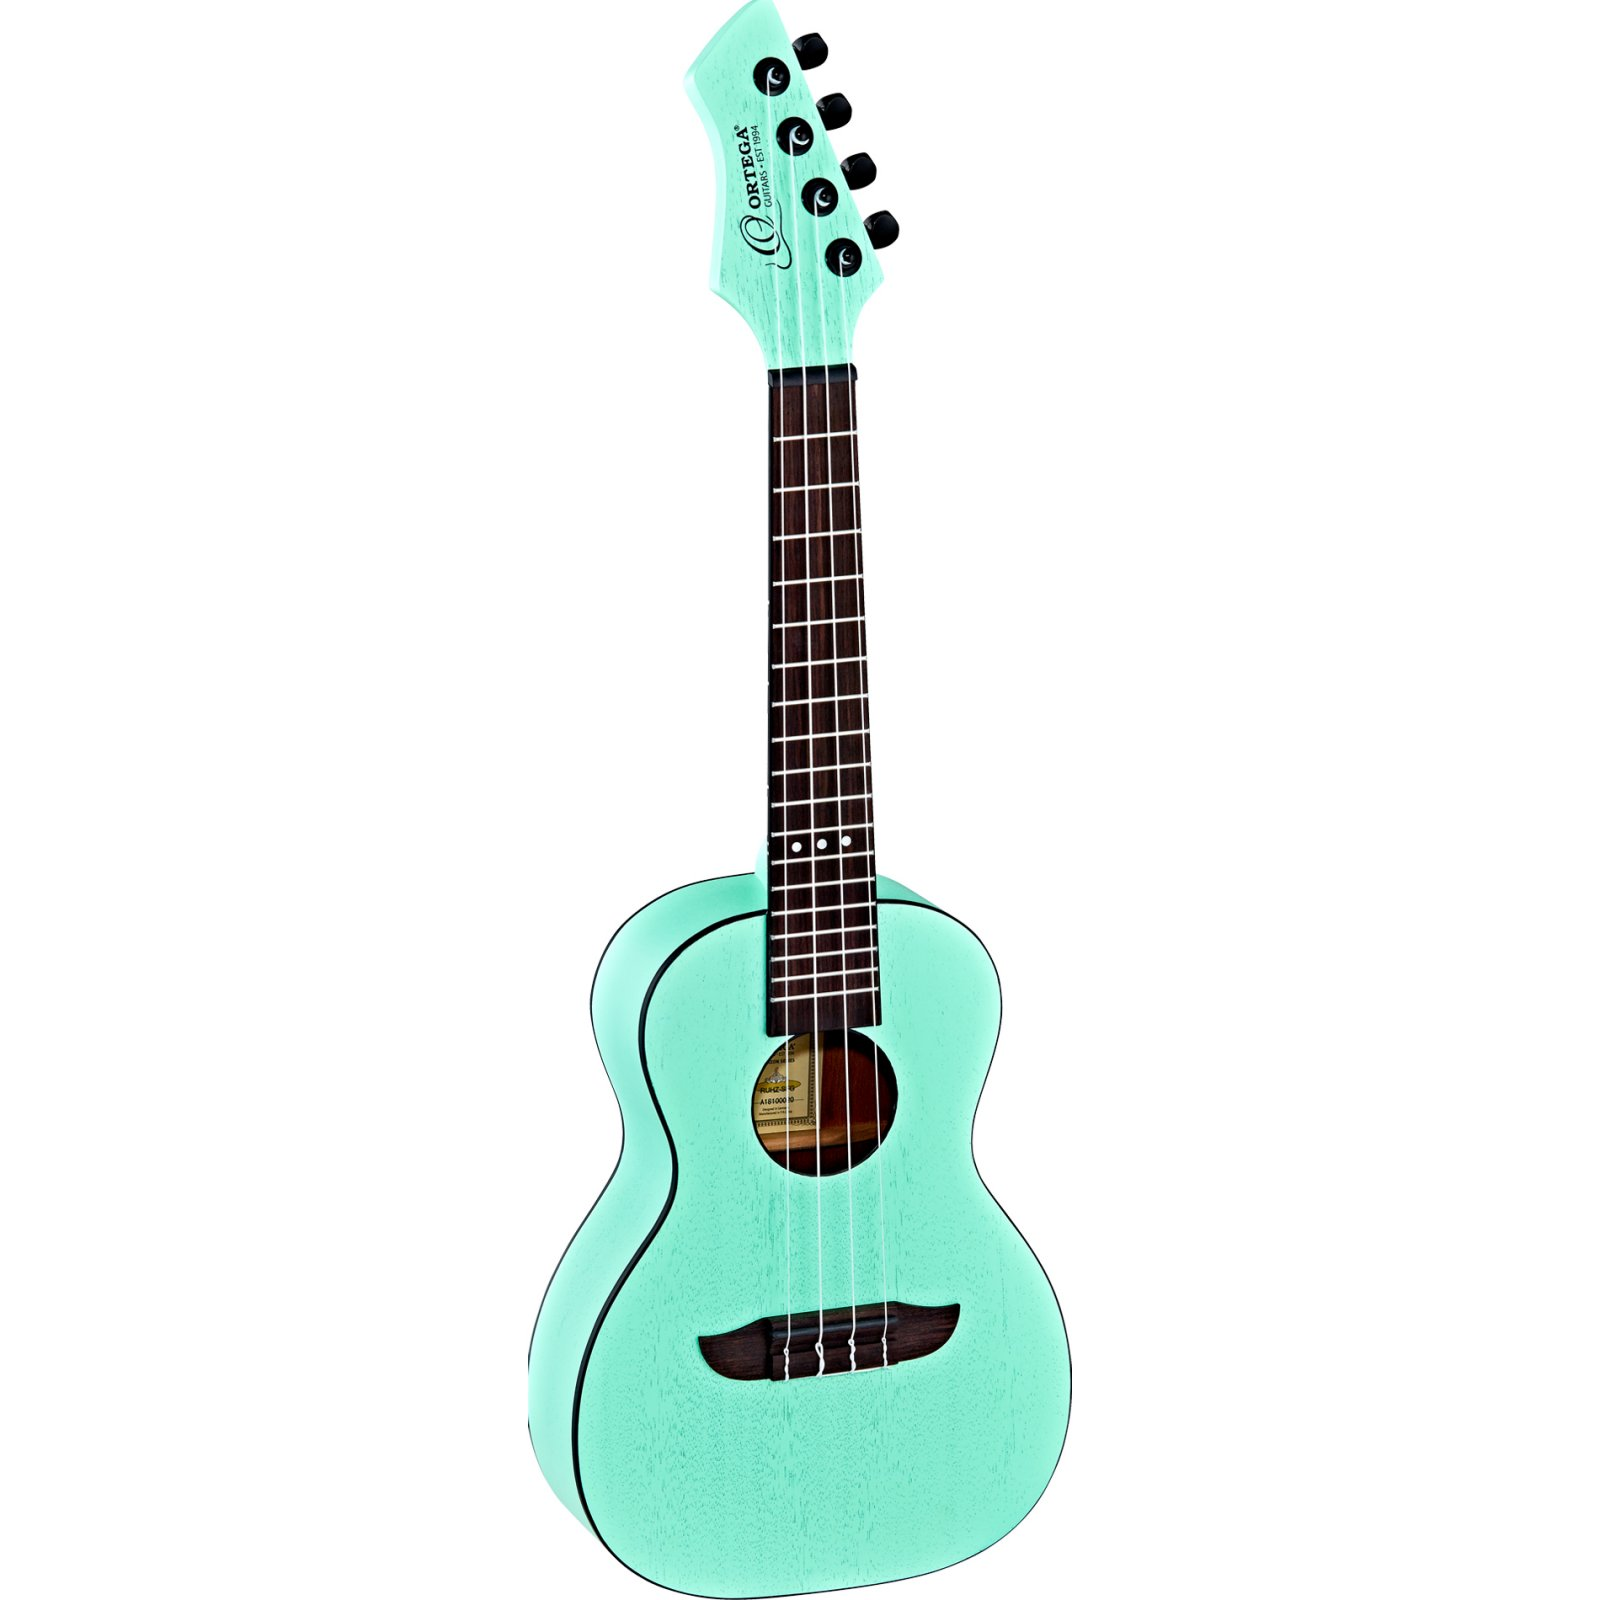 Ortega Horizon Series RUHZ-SFG Concert Ukulele, Sea Foam Green